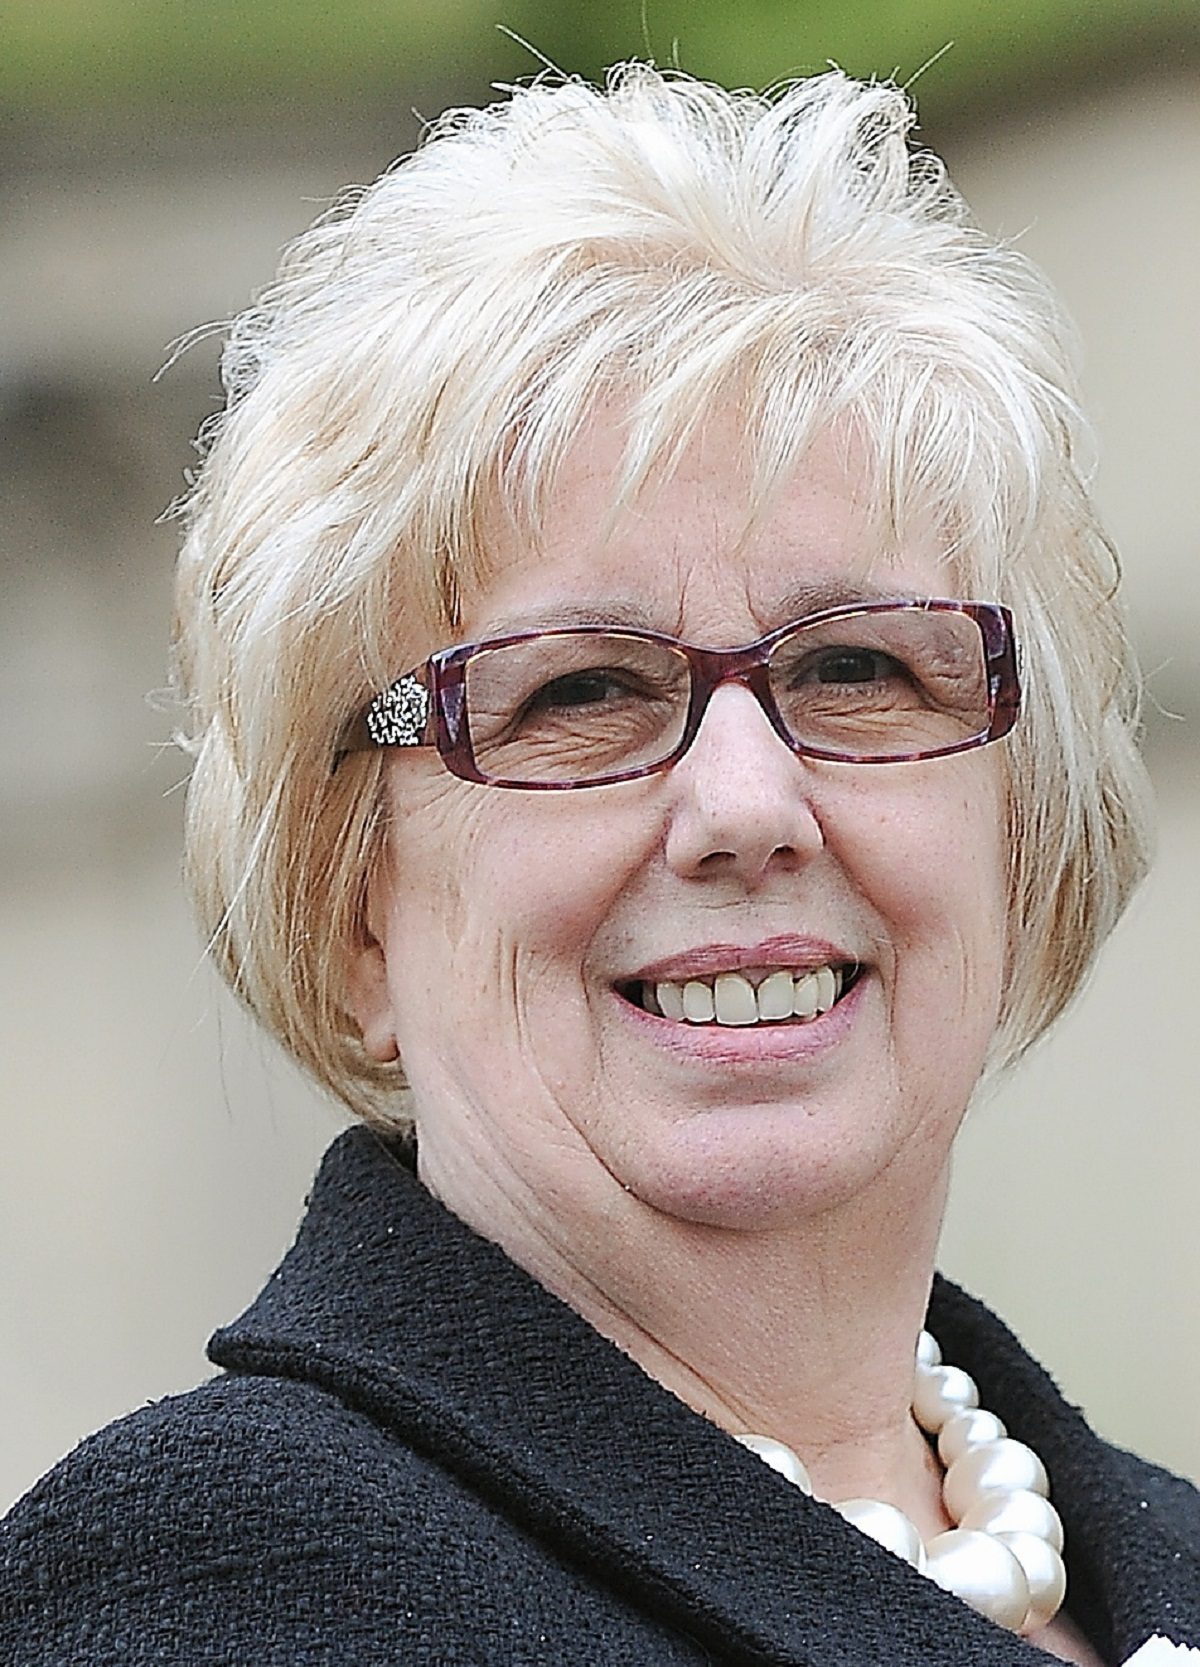 APOLOGY: Cllr Val Slater